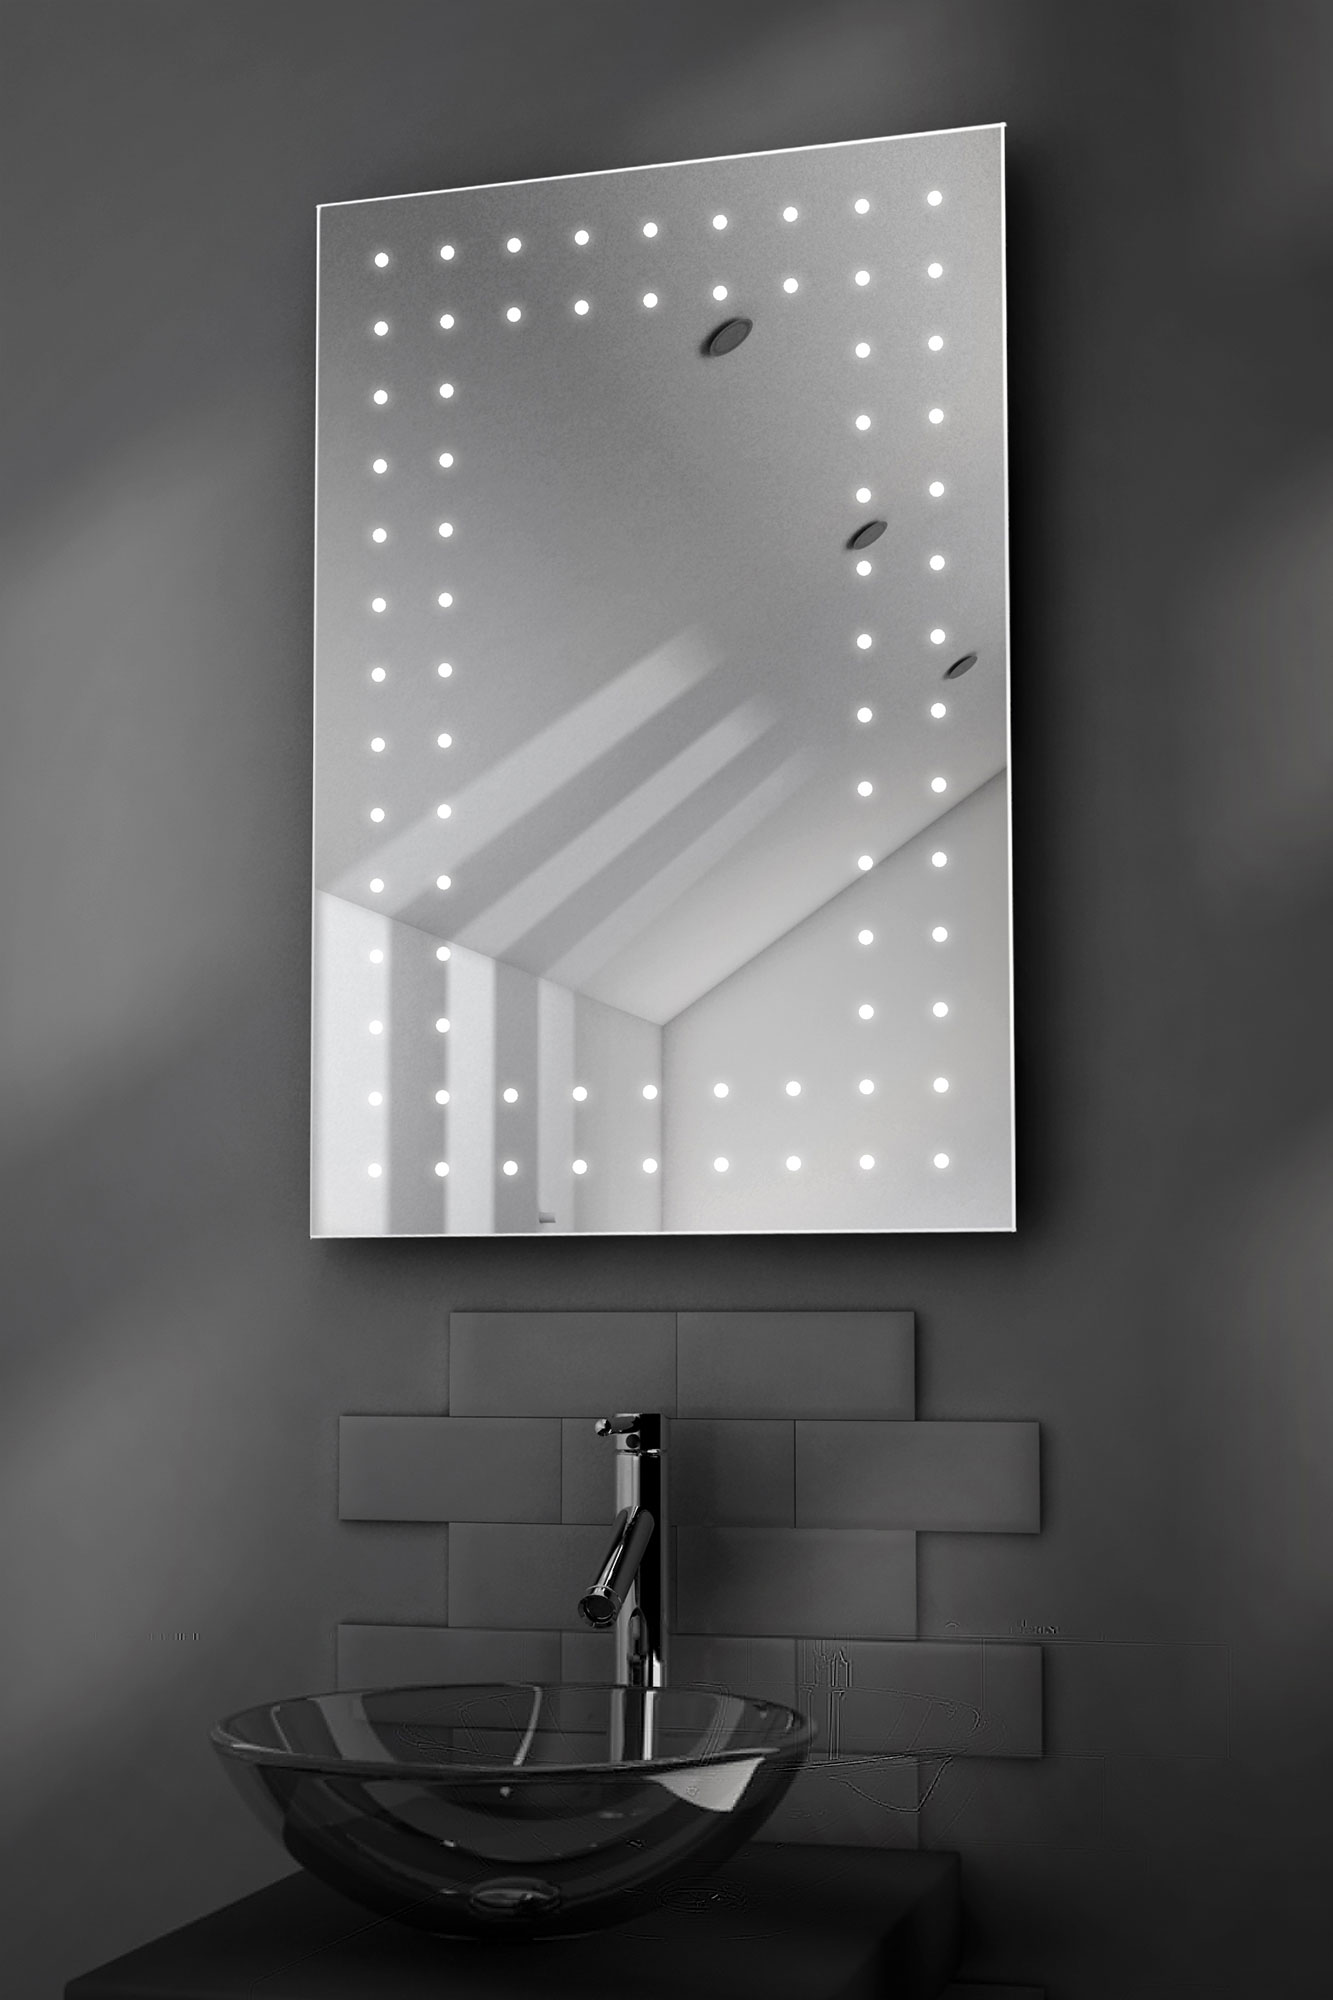 Orion Ultra Slim LED Bathroom Mirror With Demister Pad